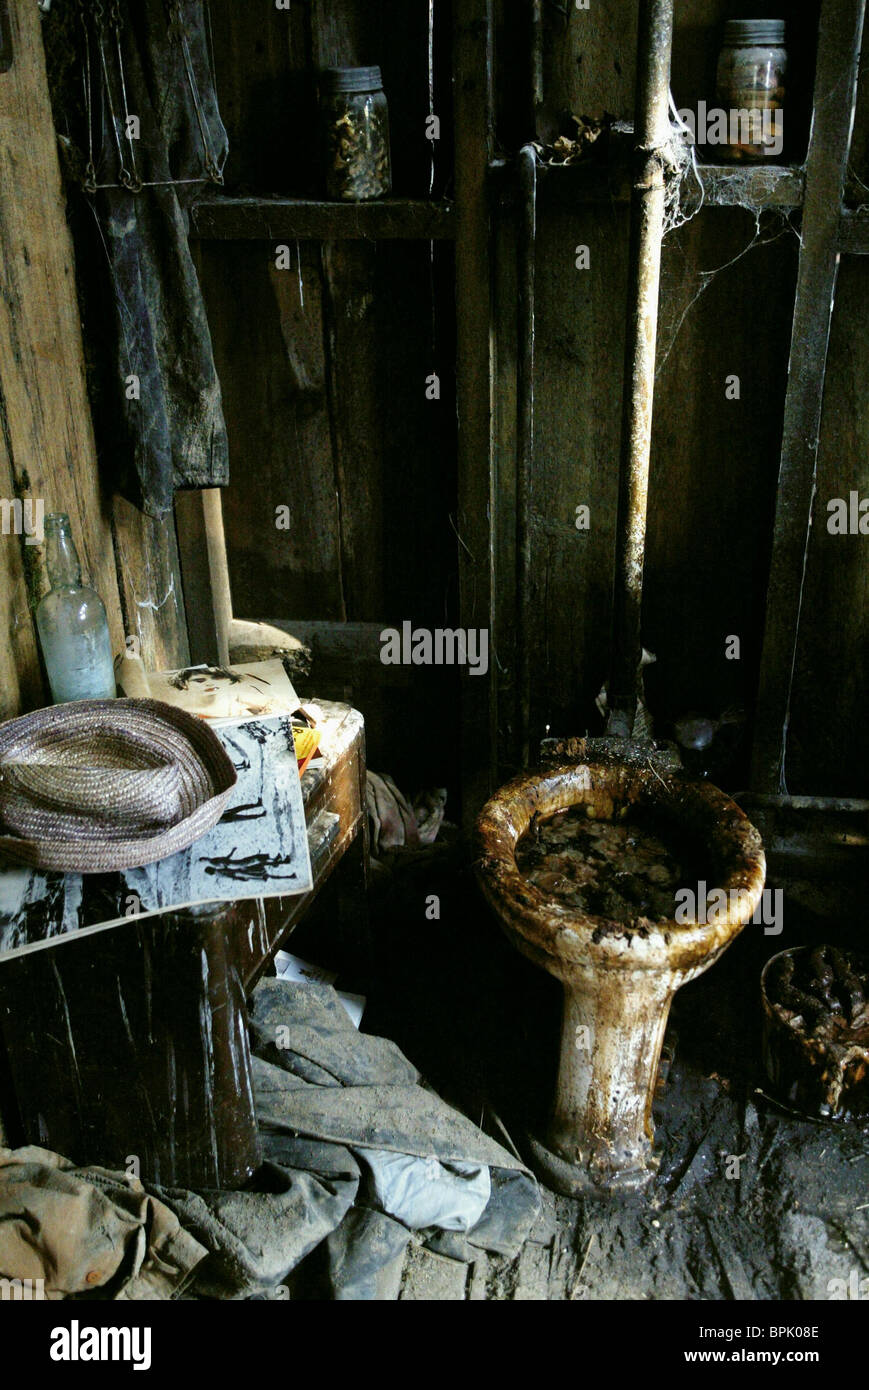 DILAPIDATED TOILET WRONG TURN (2003) - Stock Image